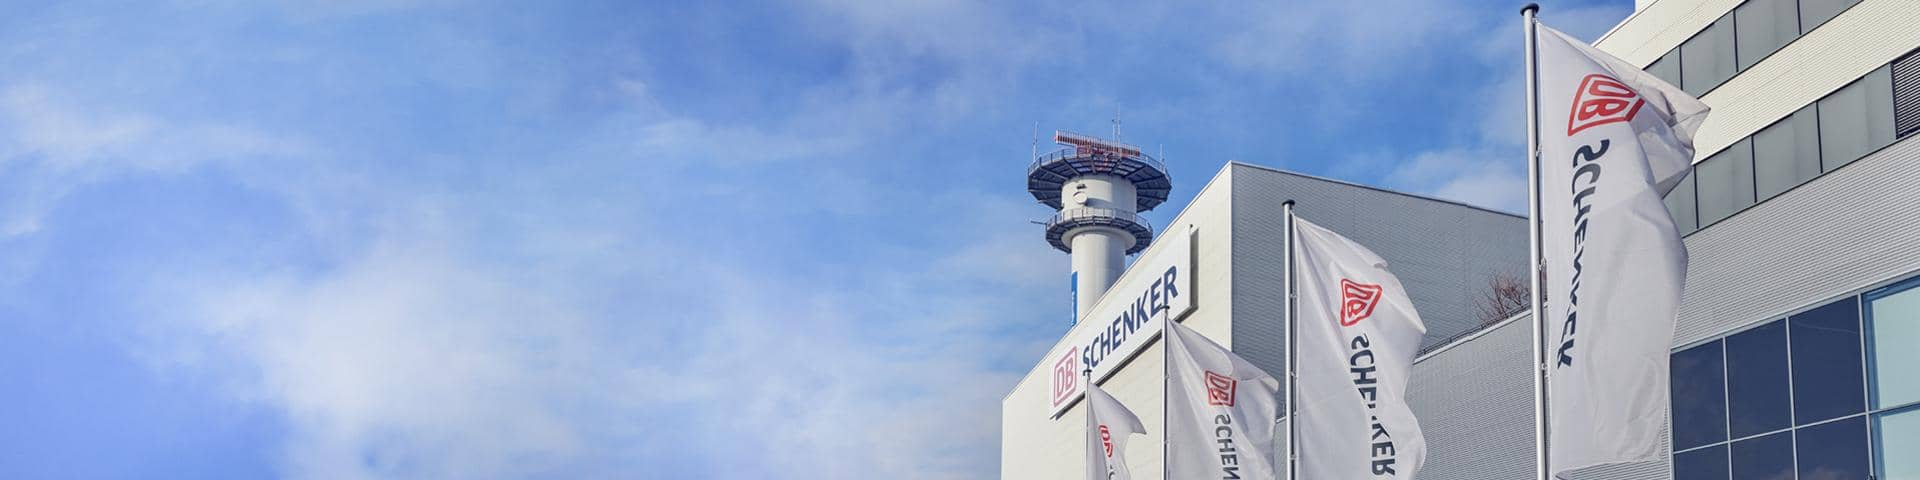 Airport DB Schenker Flags